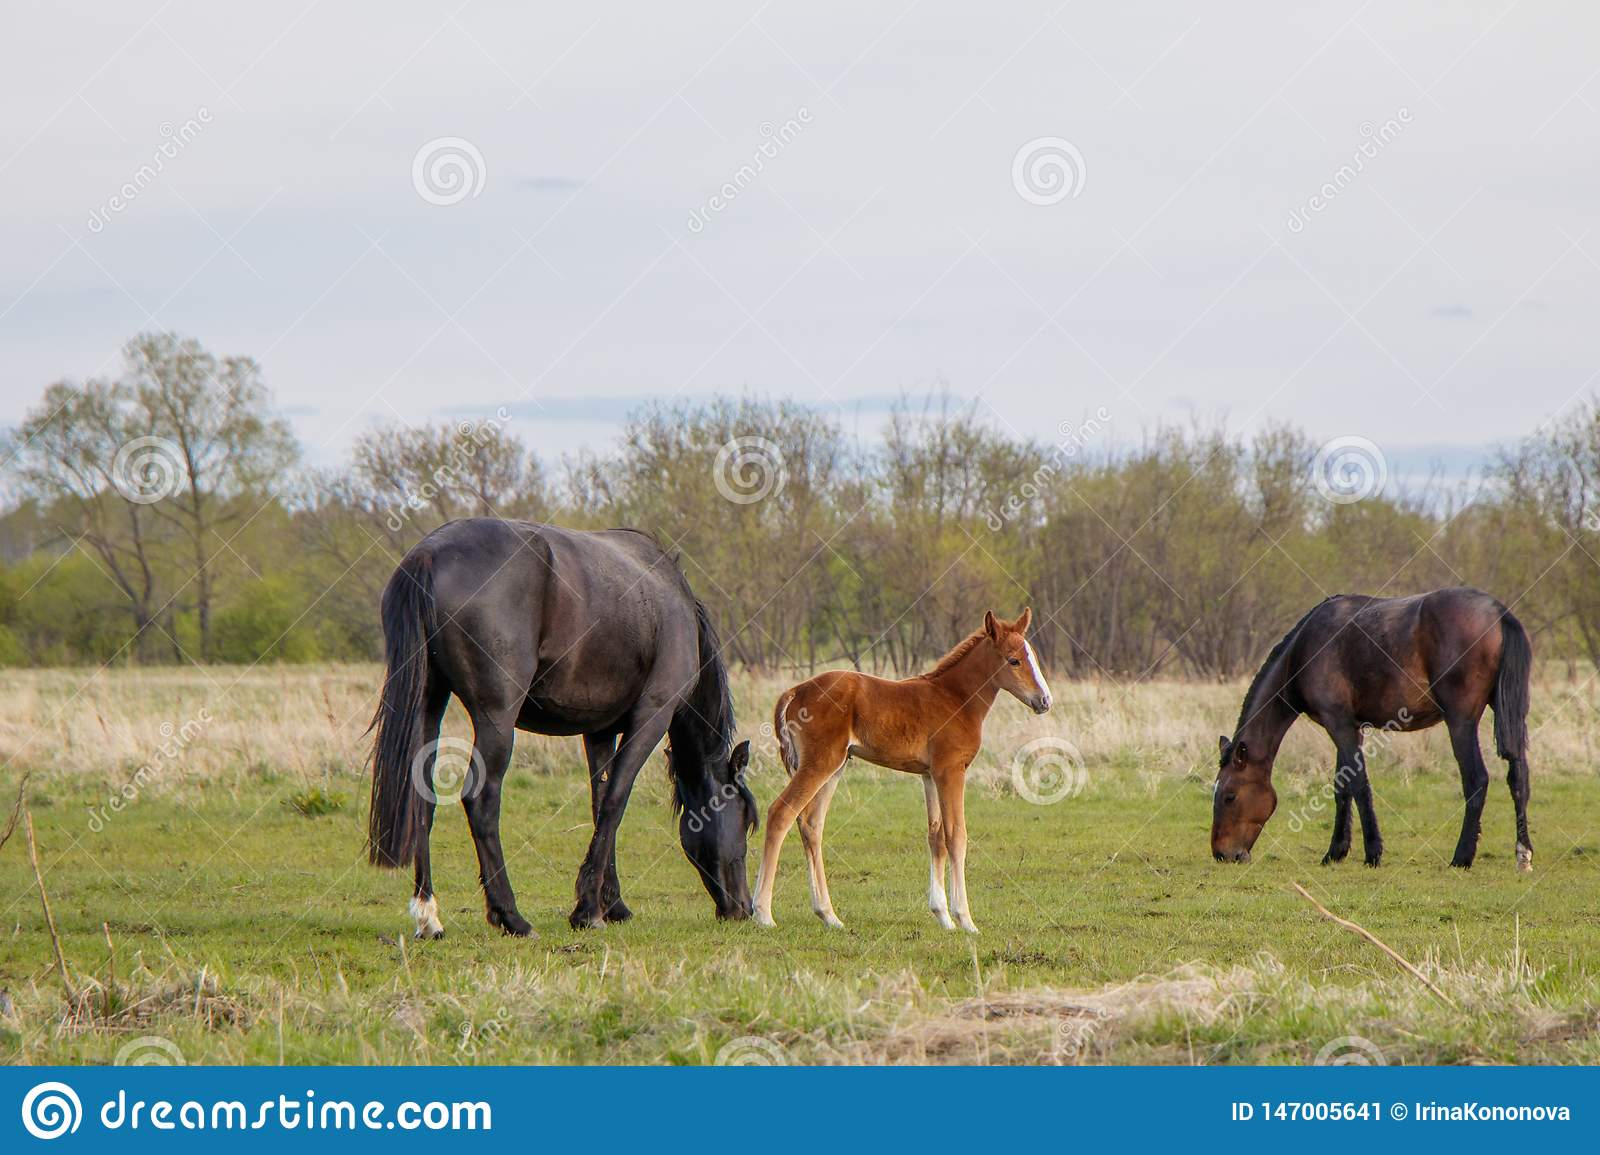 A light brown foal and two dark horses graze in the pasture